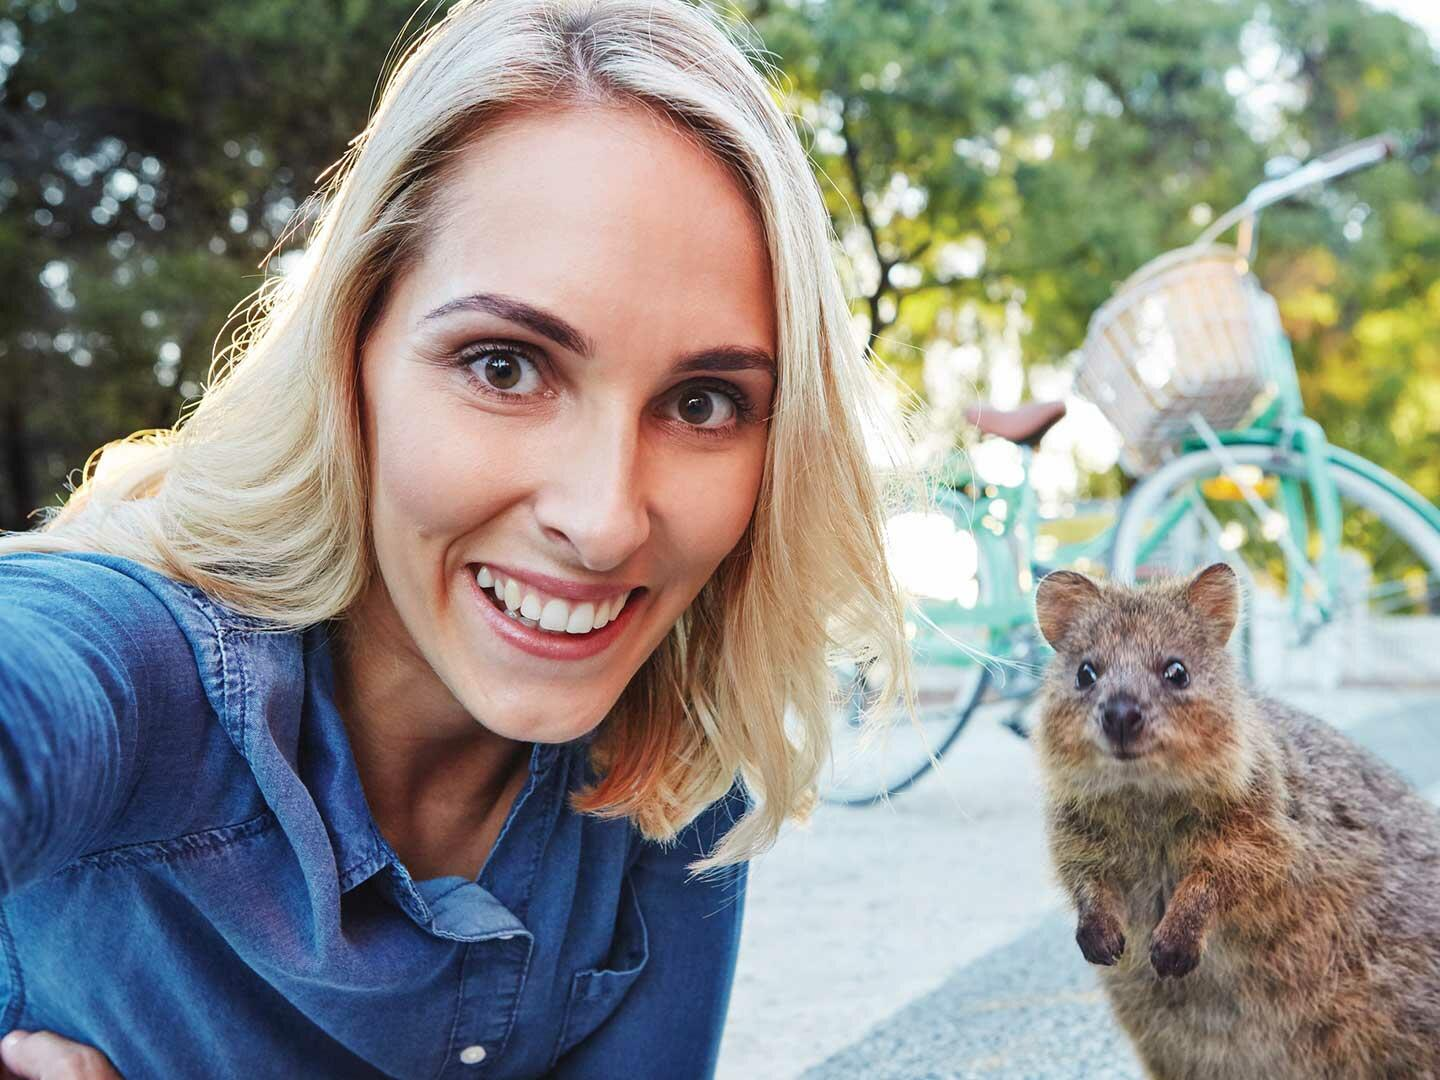 A woman taking a picture with a quokka at Rottnest Island near Be Fremantle